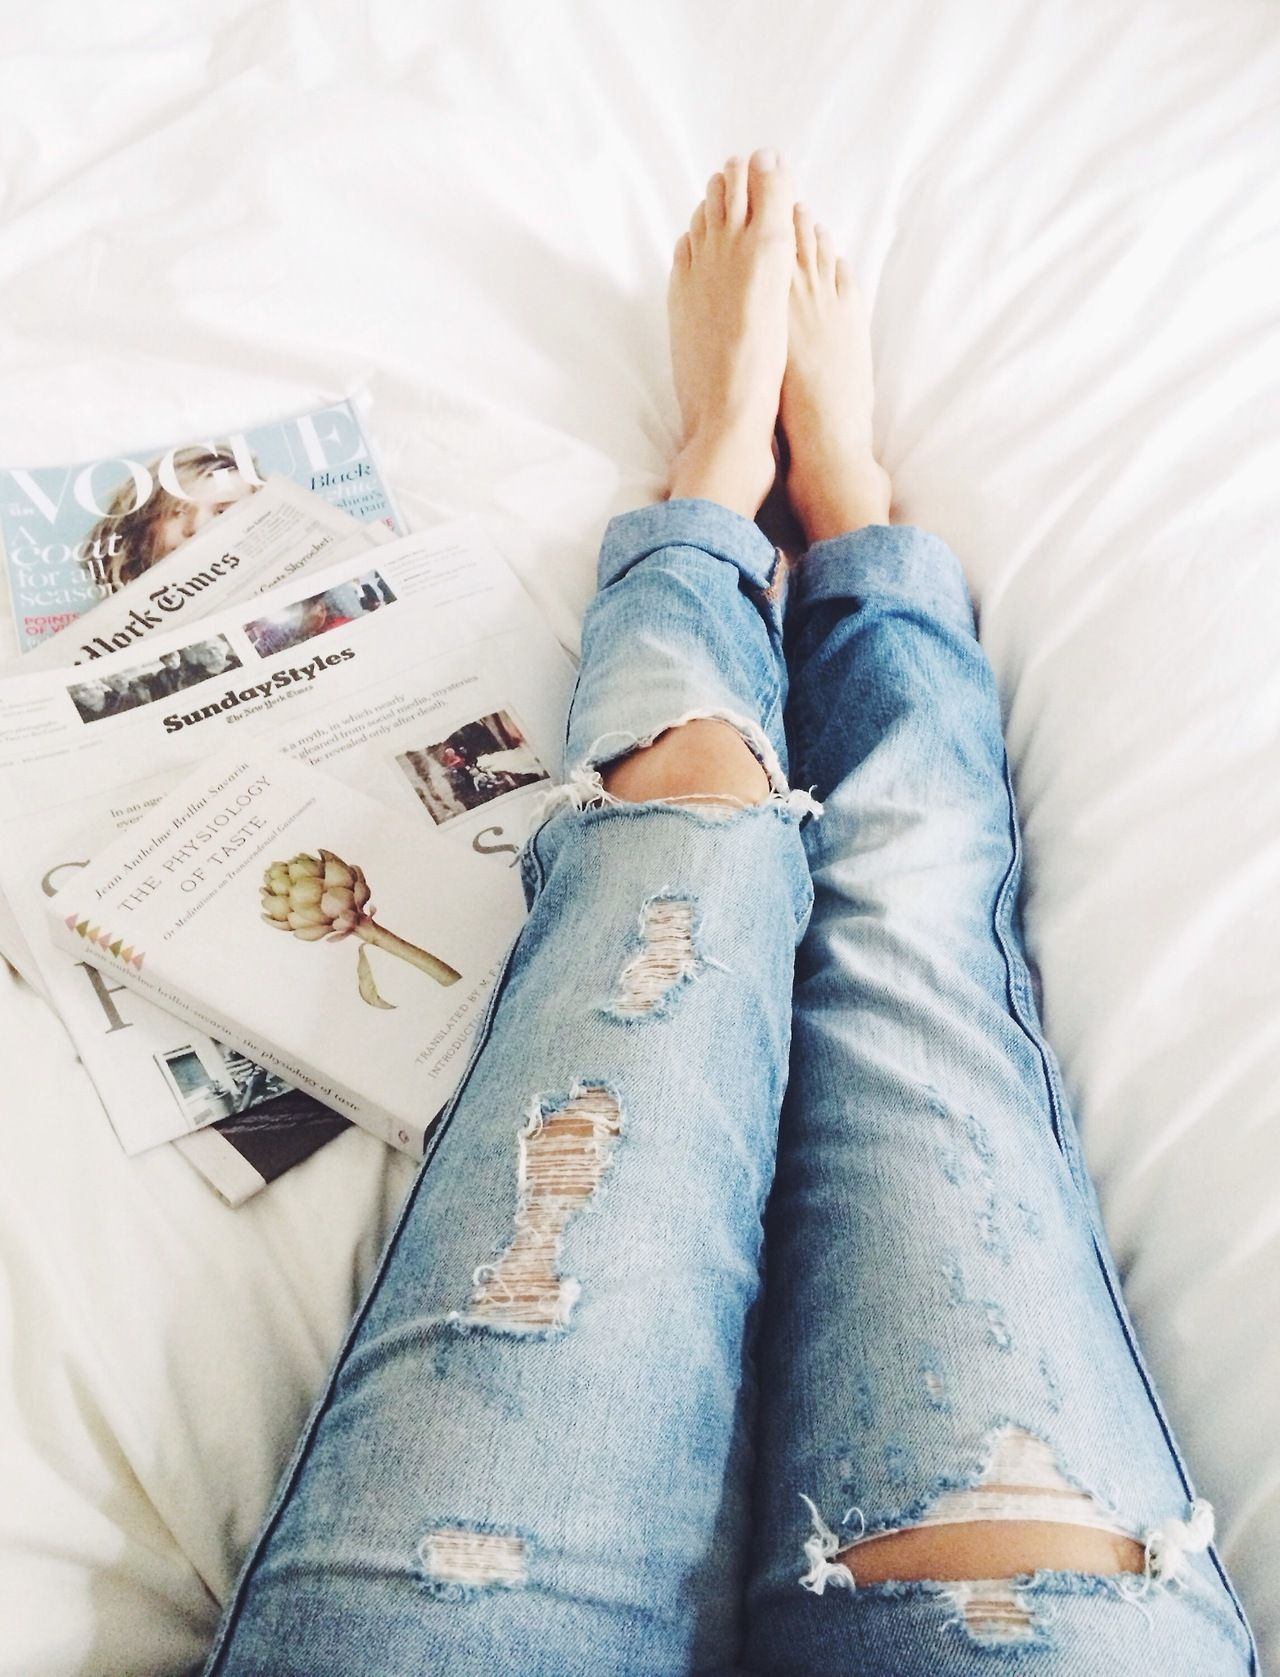 Lucy Laucht Wearing Ripped J. Crew Jeans